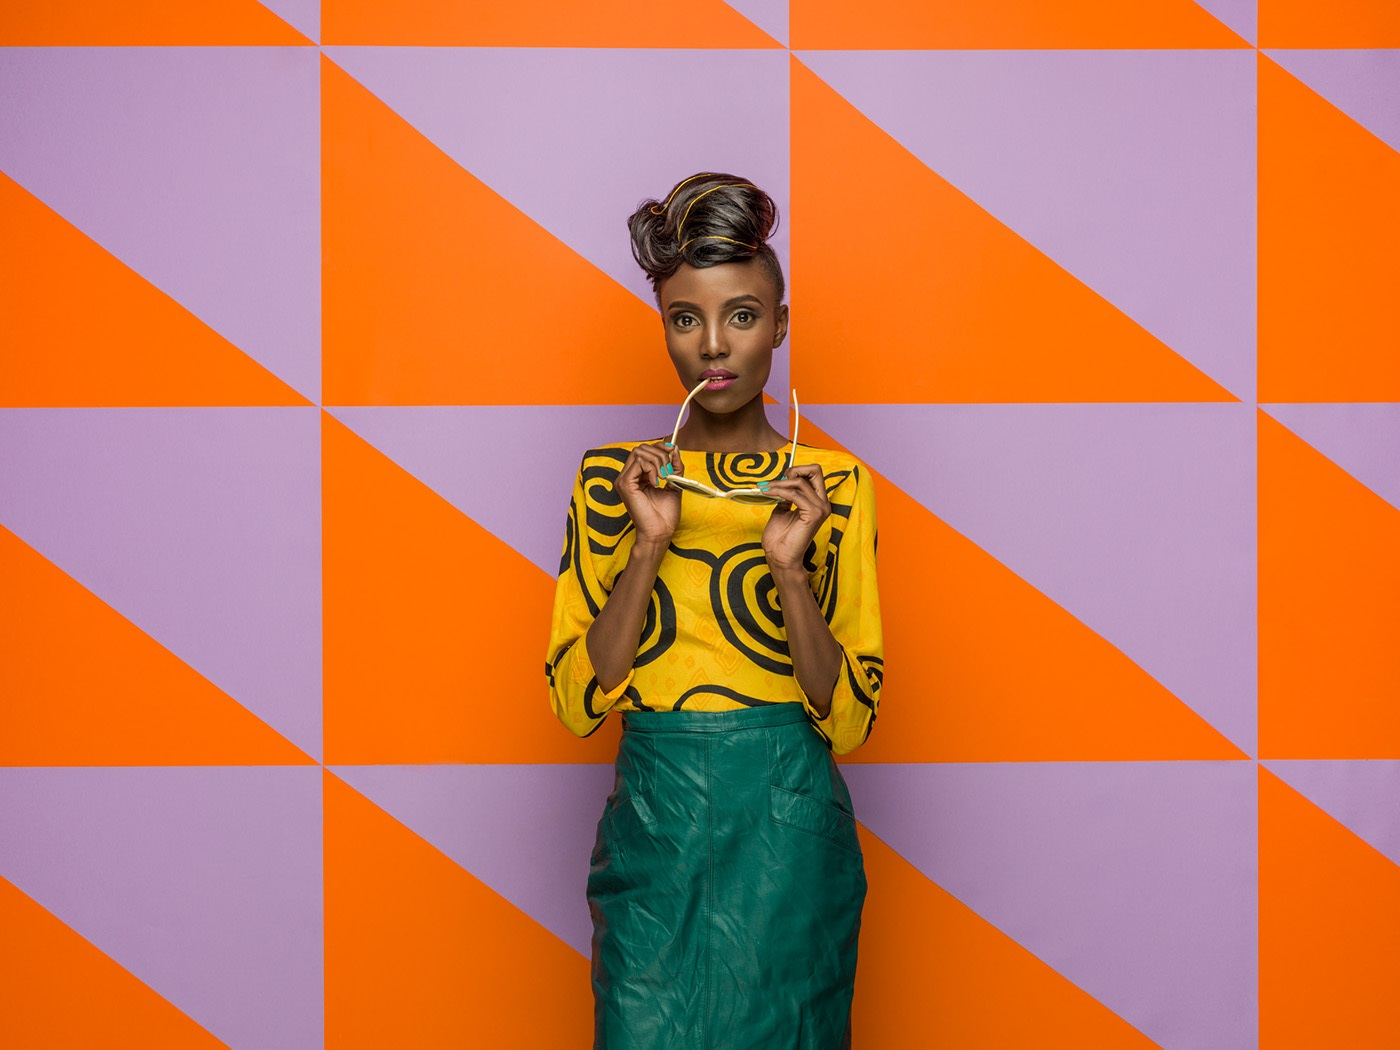 portrait photography yellow colorcafe by osborne macharia